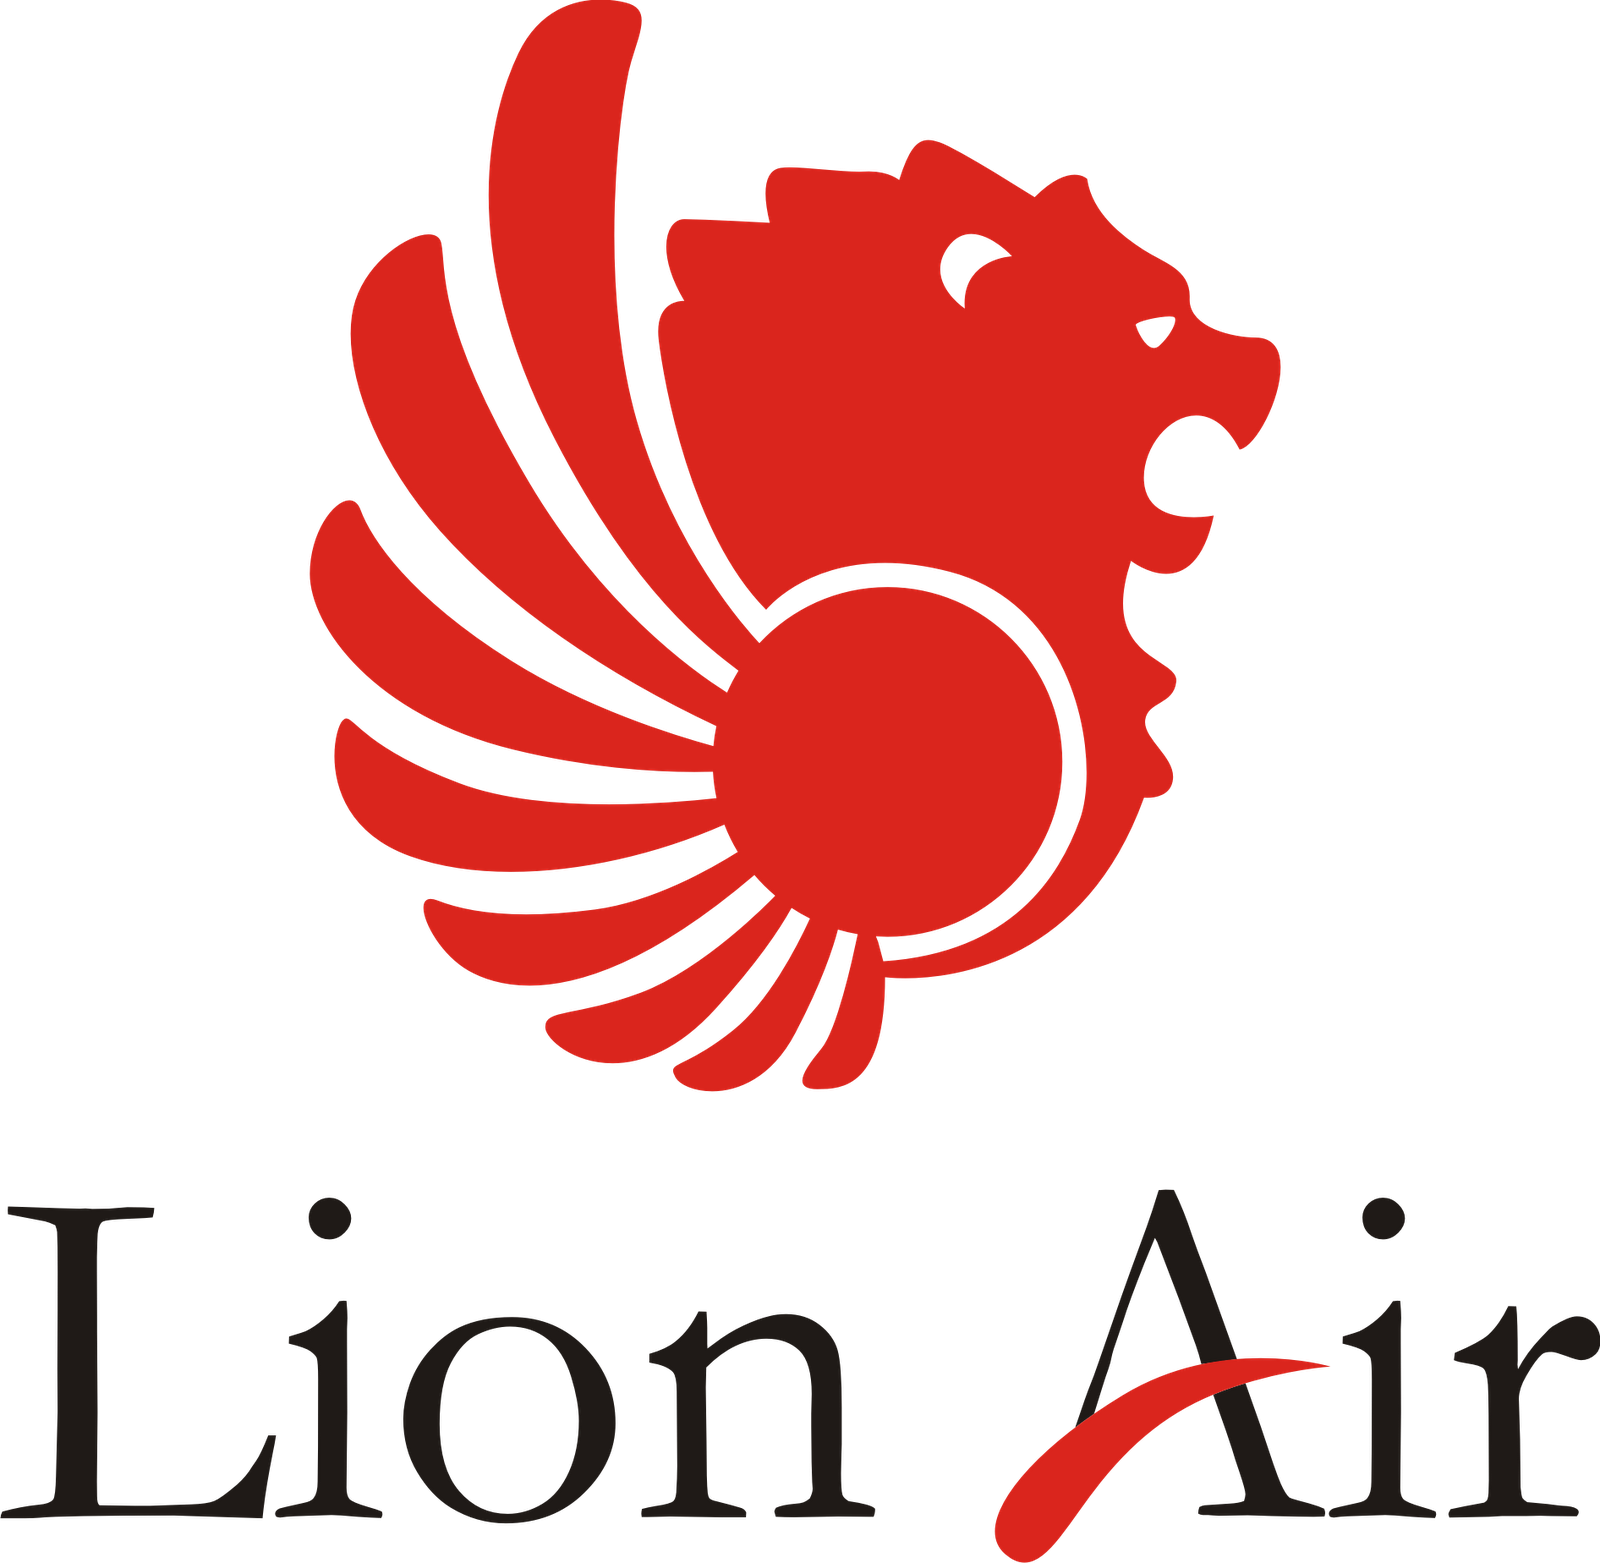 Lion air logo png. Airlines pinterest